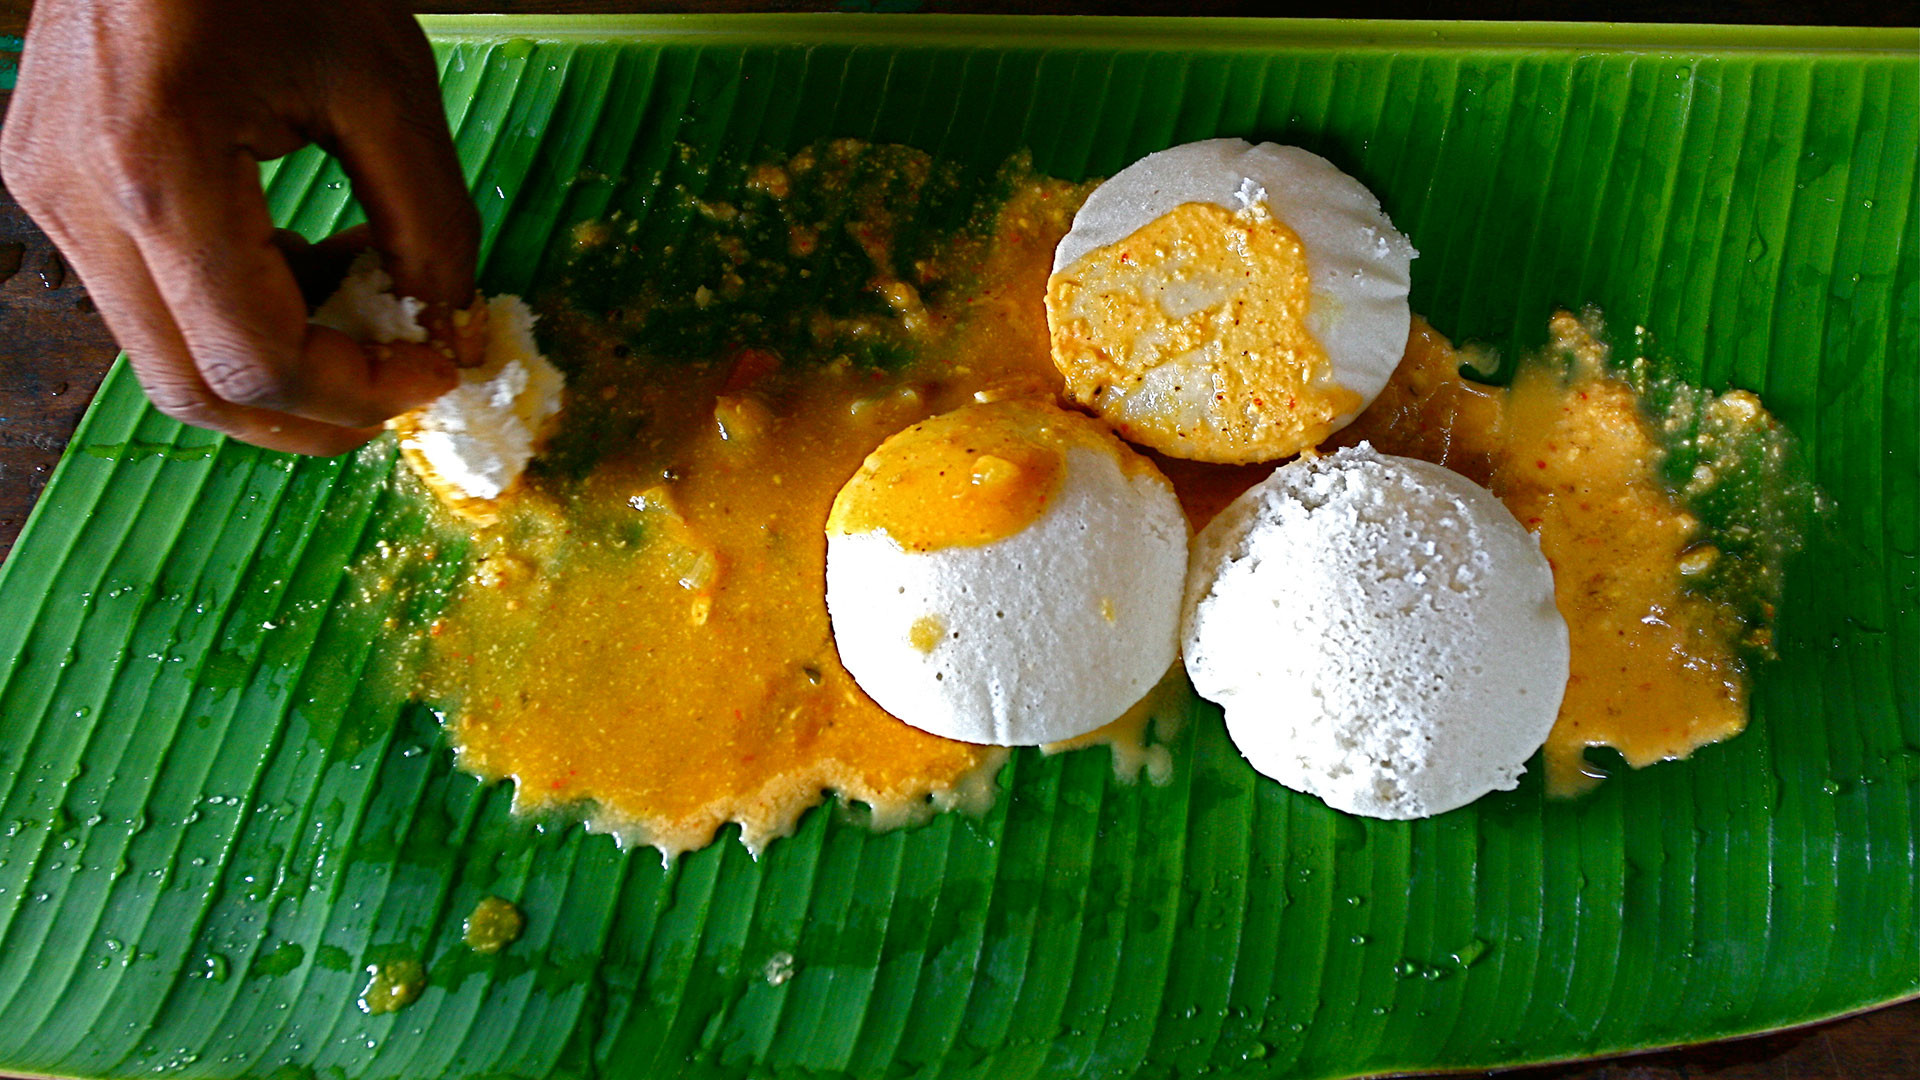 Idli – steamed rice cakes – are a breakfast staple in south India